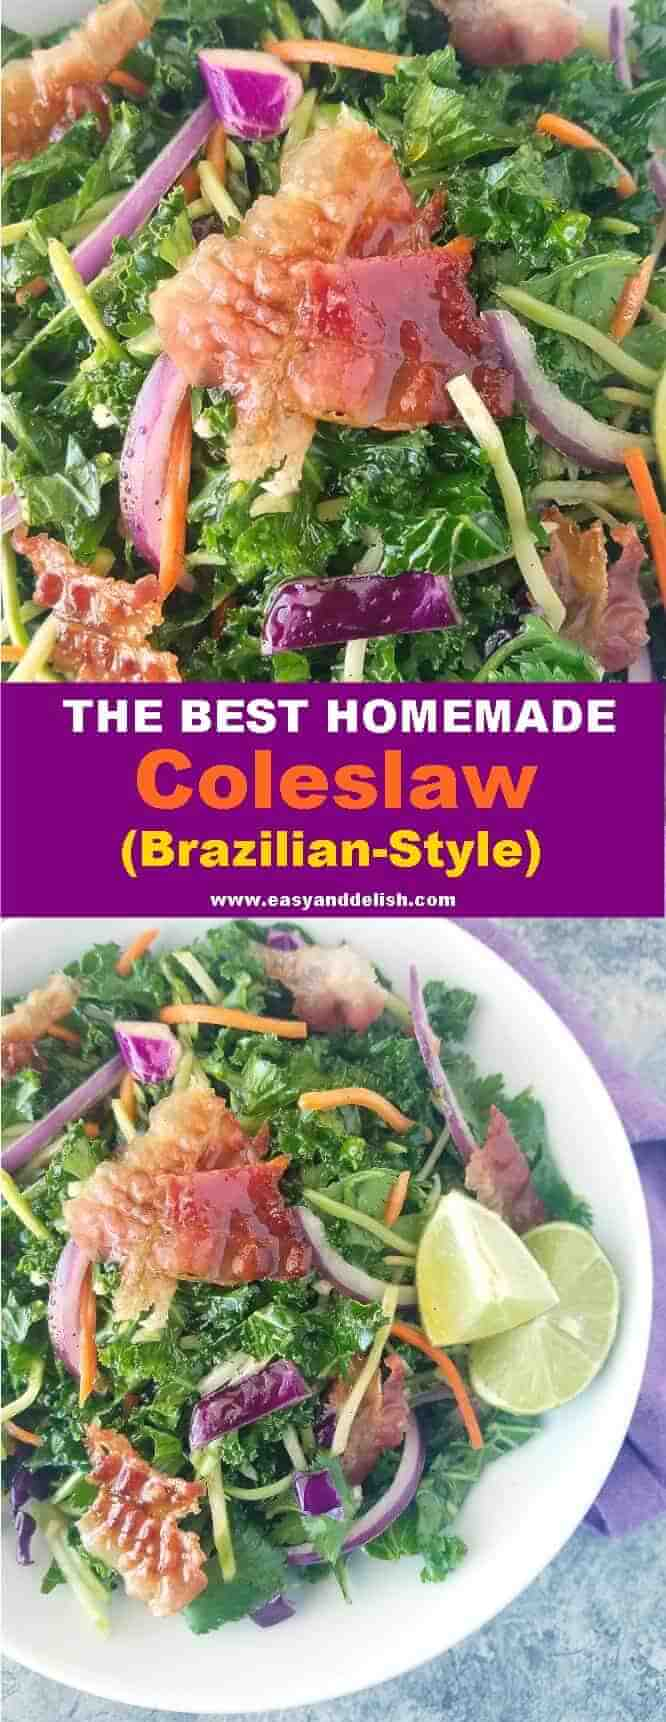 Combined images showing close up of homemade coleslaw